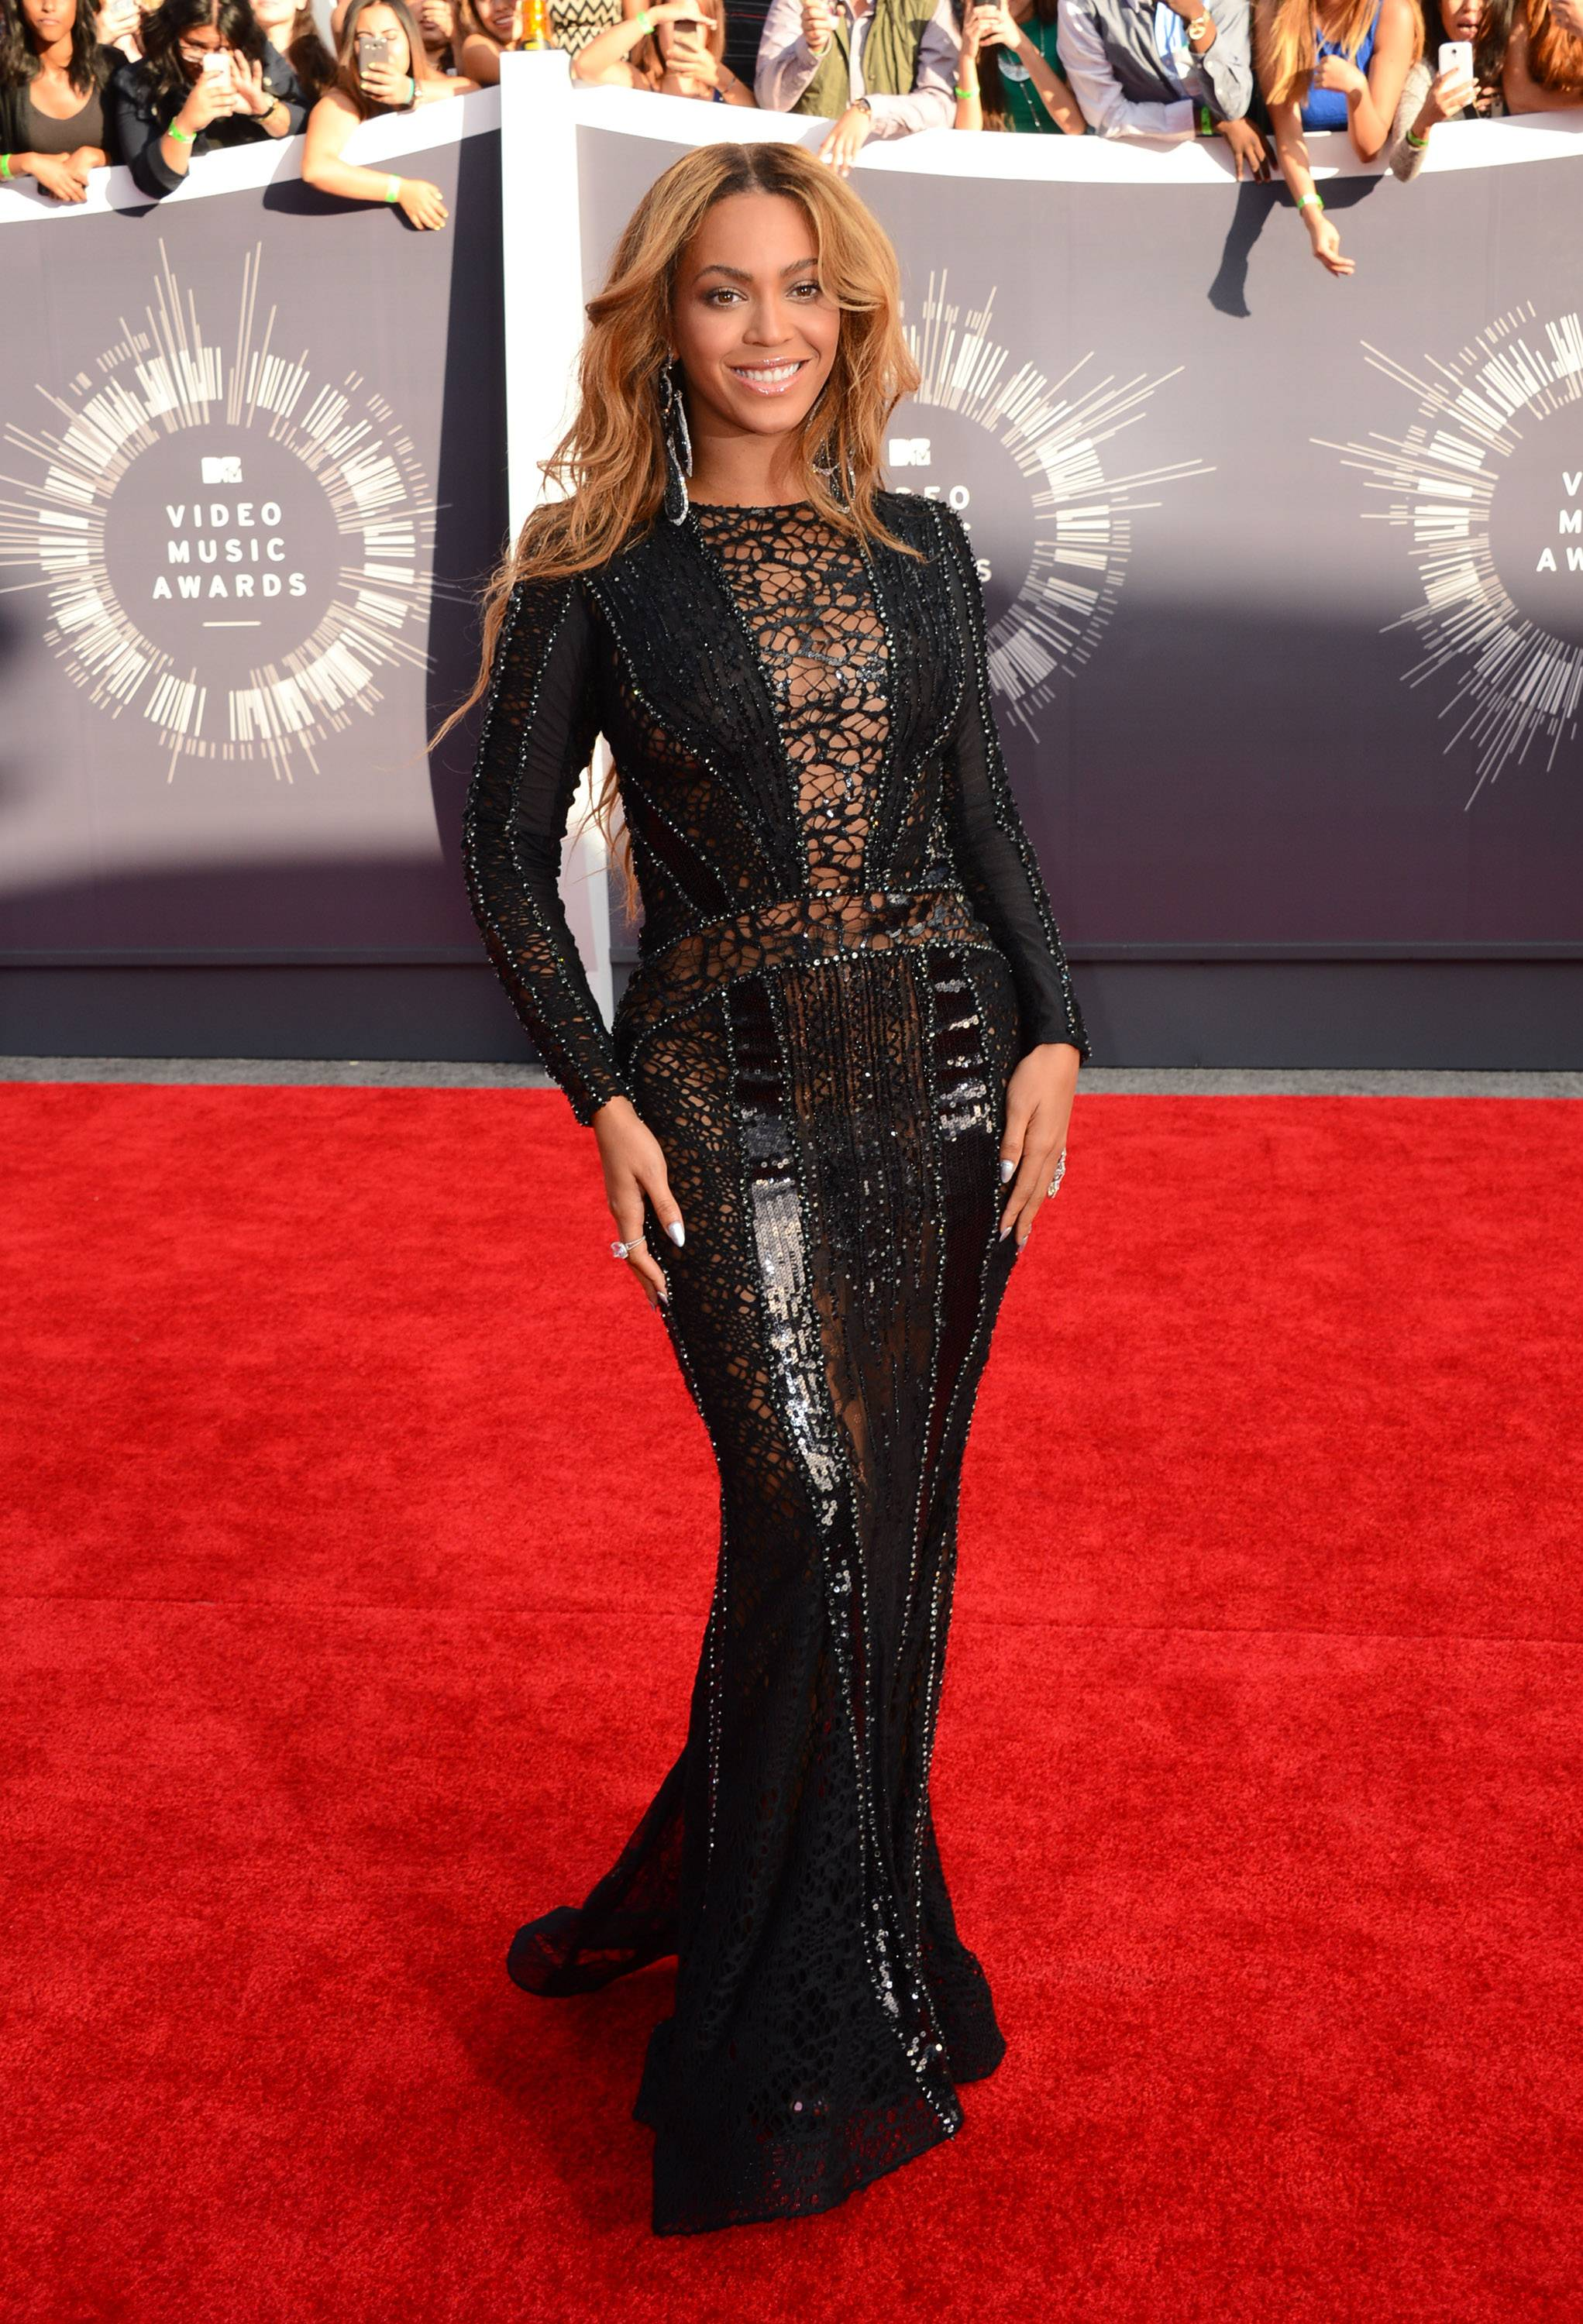 Beyonce arrives at the MTV Video Music Awards on Sunday.